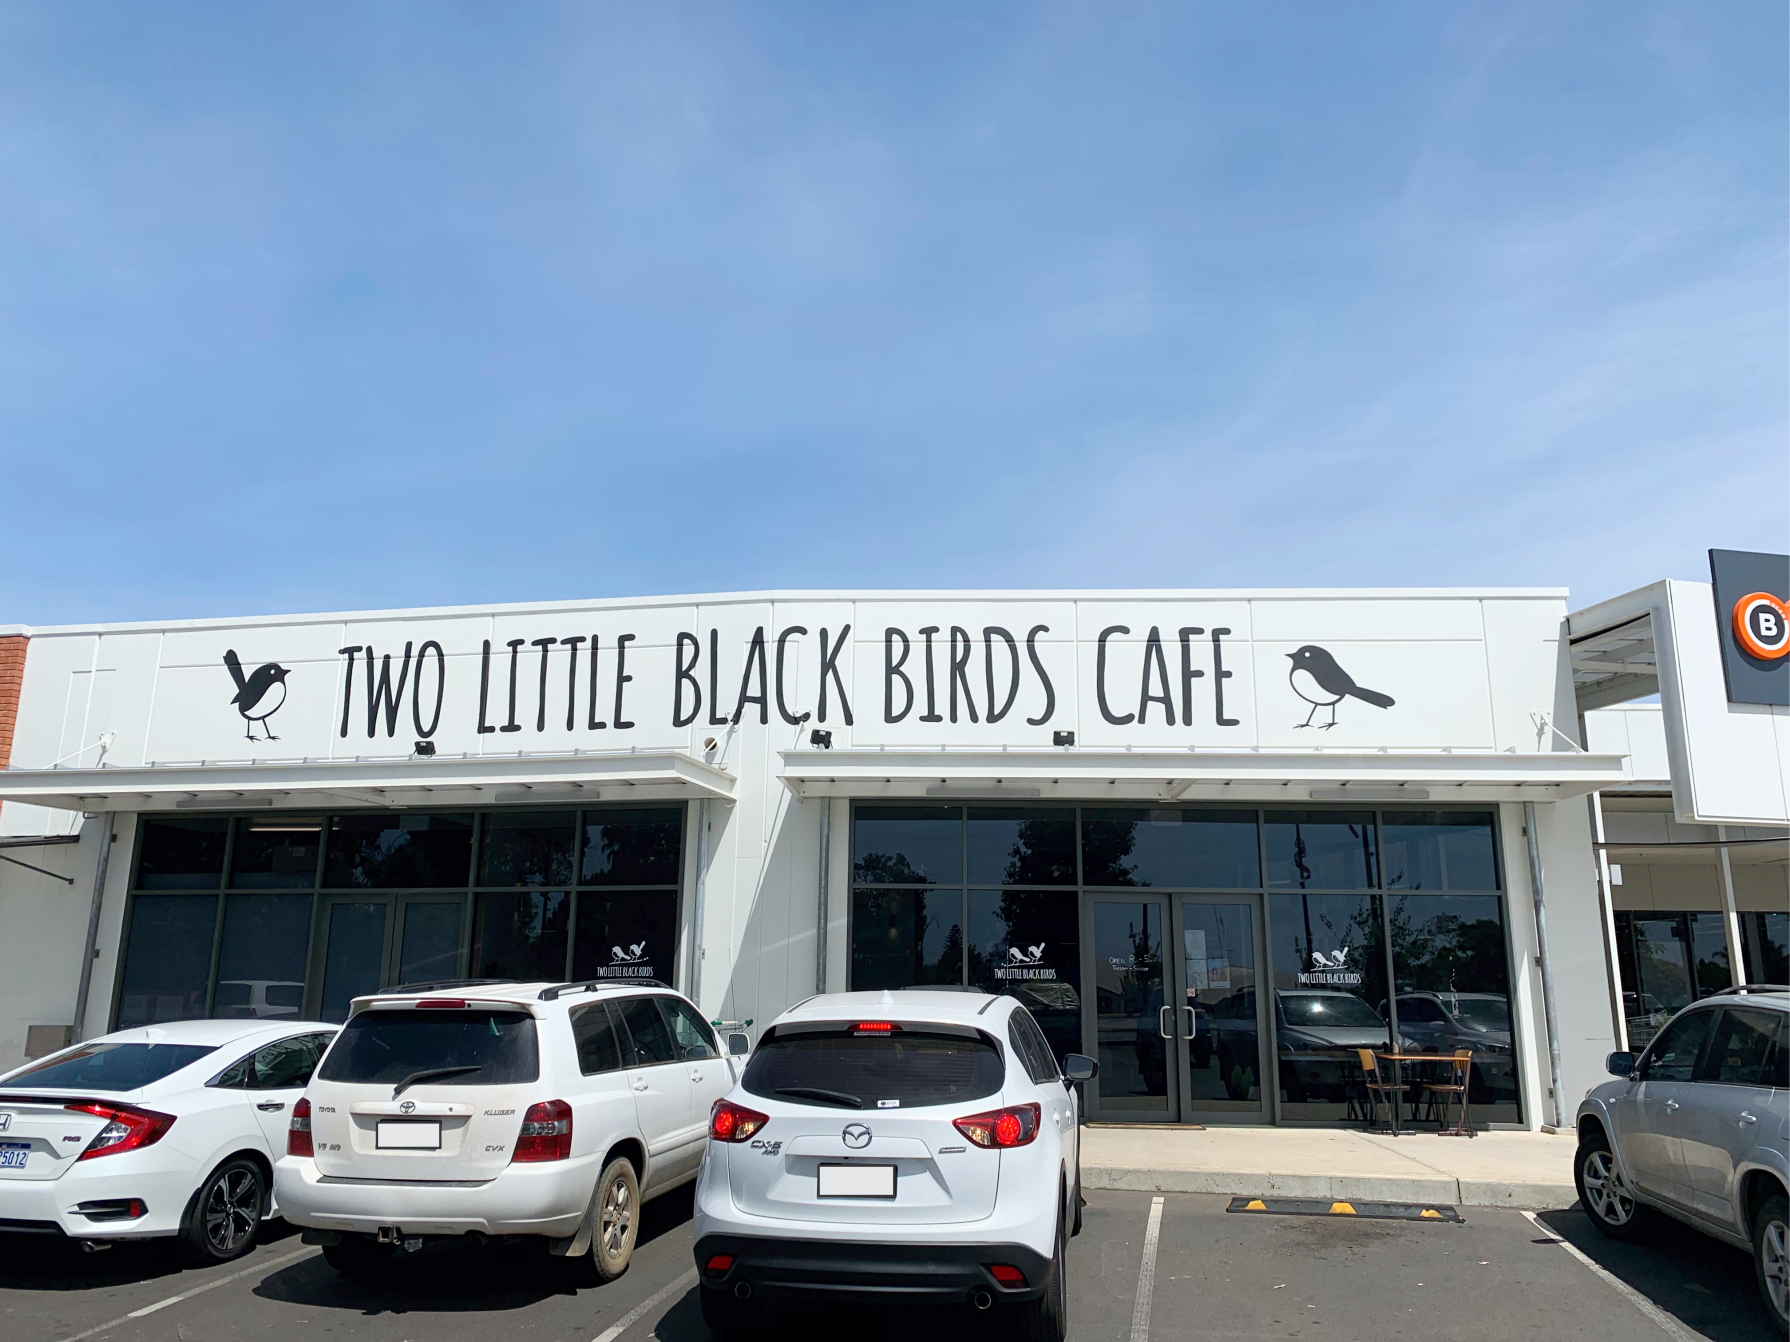 Two Little Black Birds Cafe